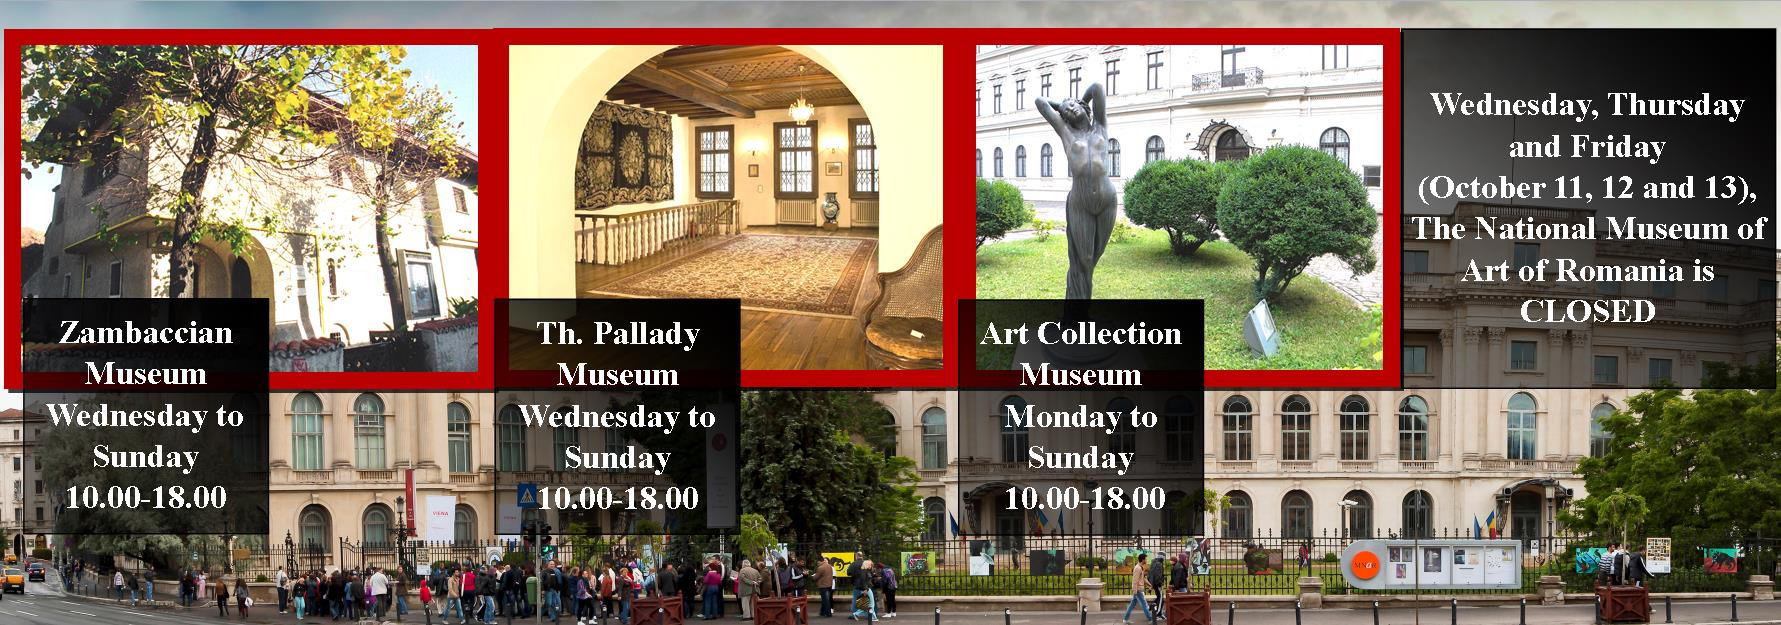 9-13 OCTOBER SPECIAL OPENNING PROGRAMME